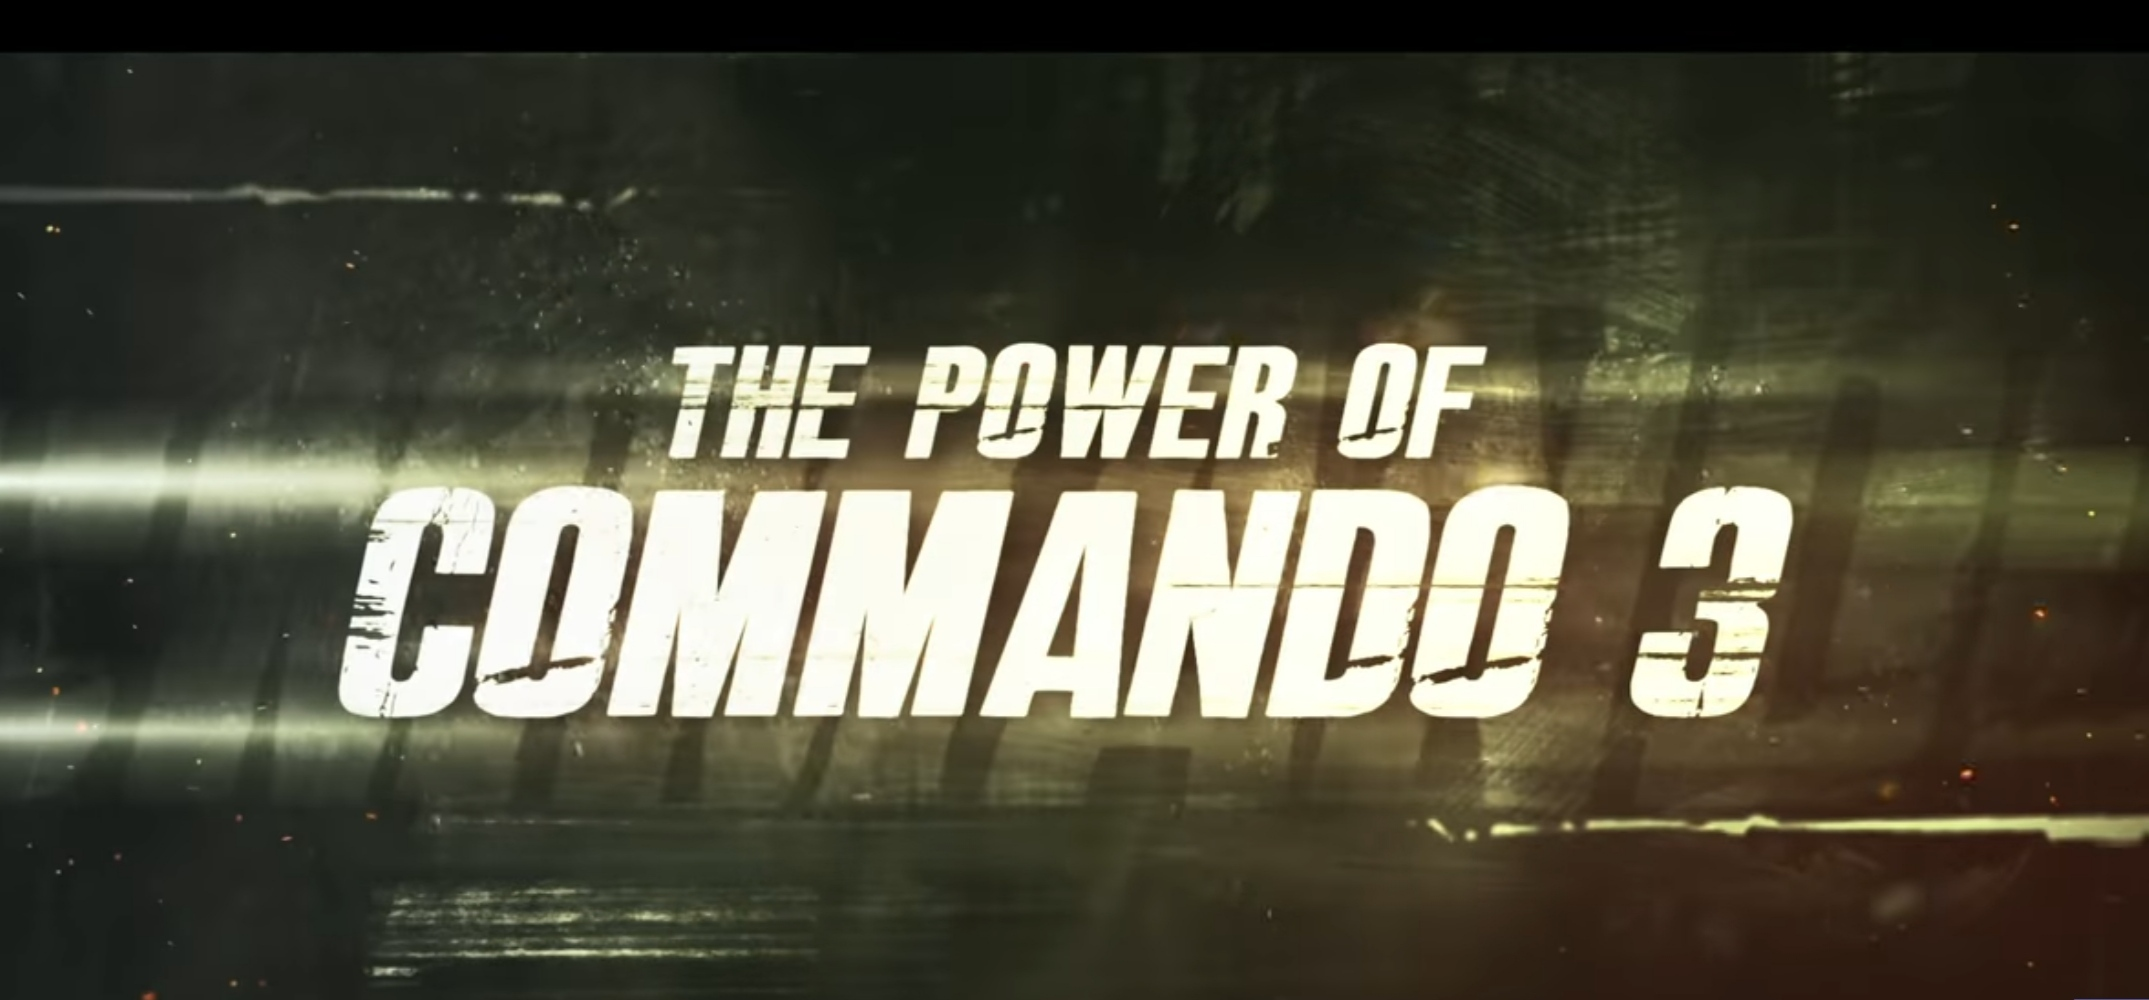 Commando 3 movie review -Good action & thriller film based on terrorism